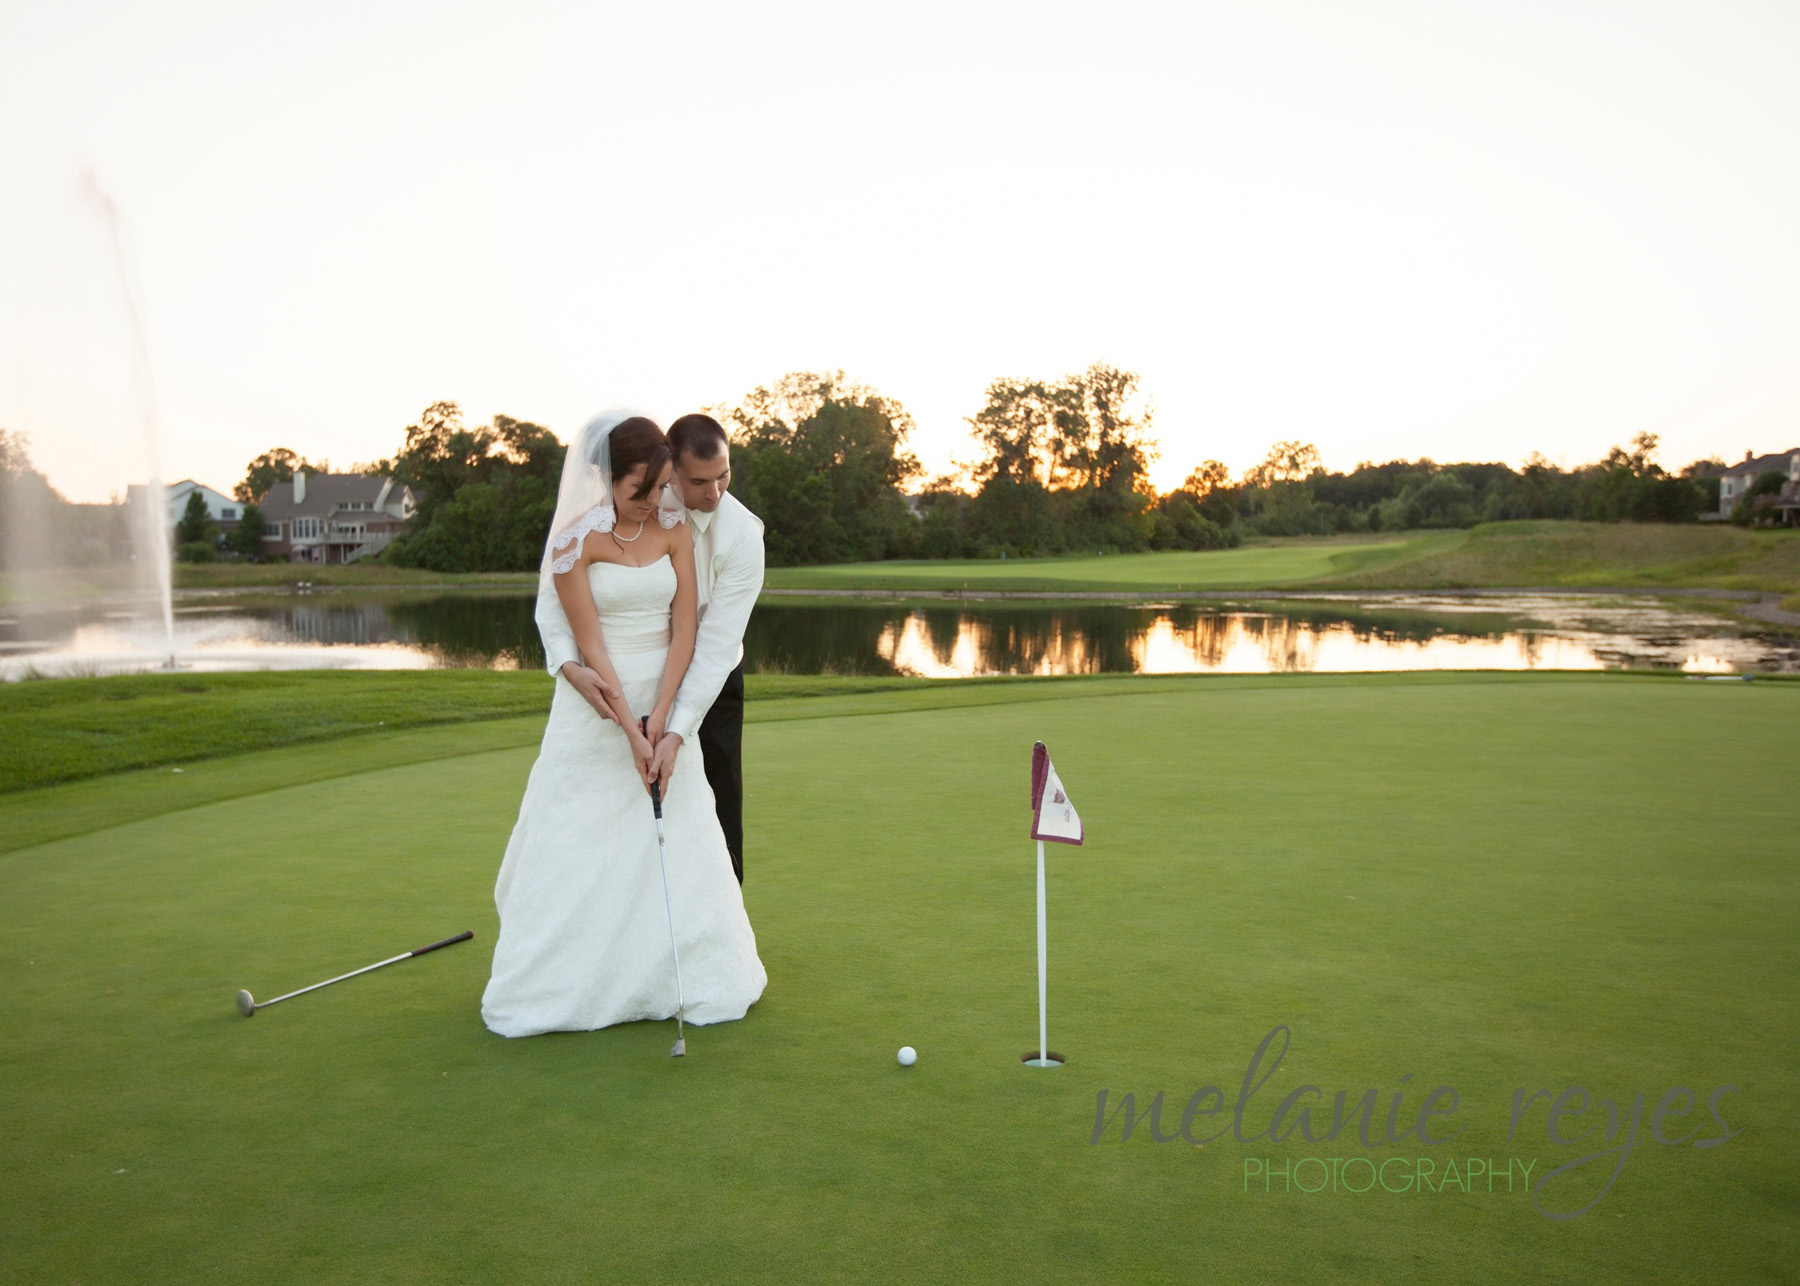 ann_arbor_wedding_photographer__030